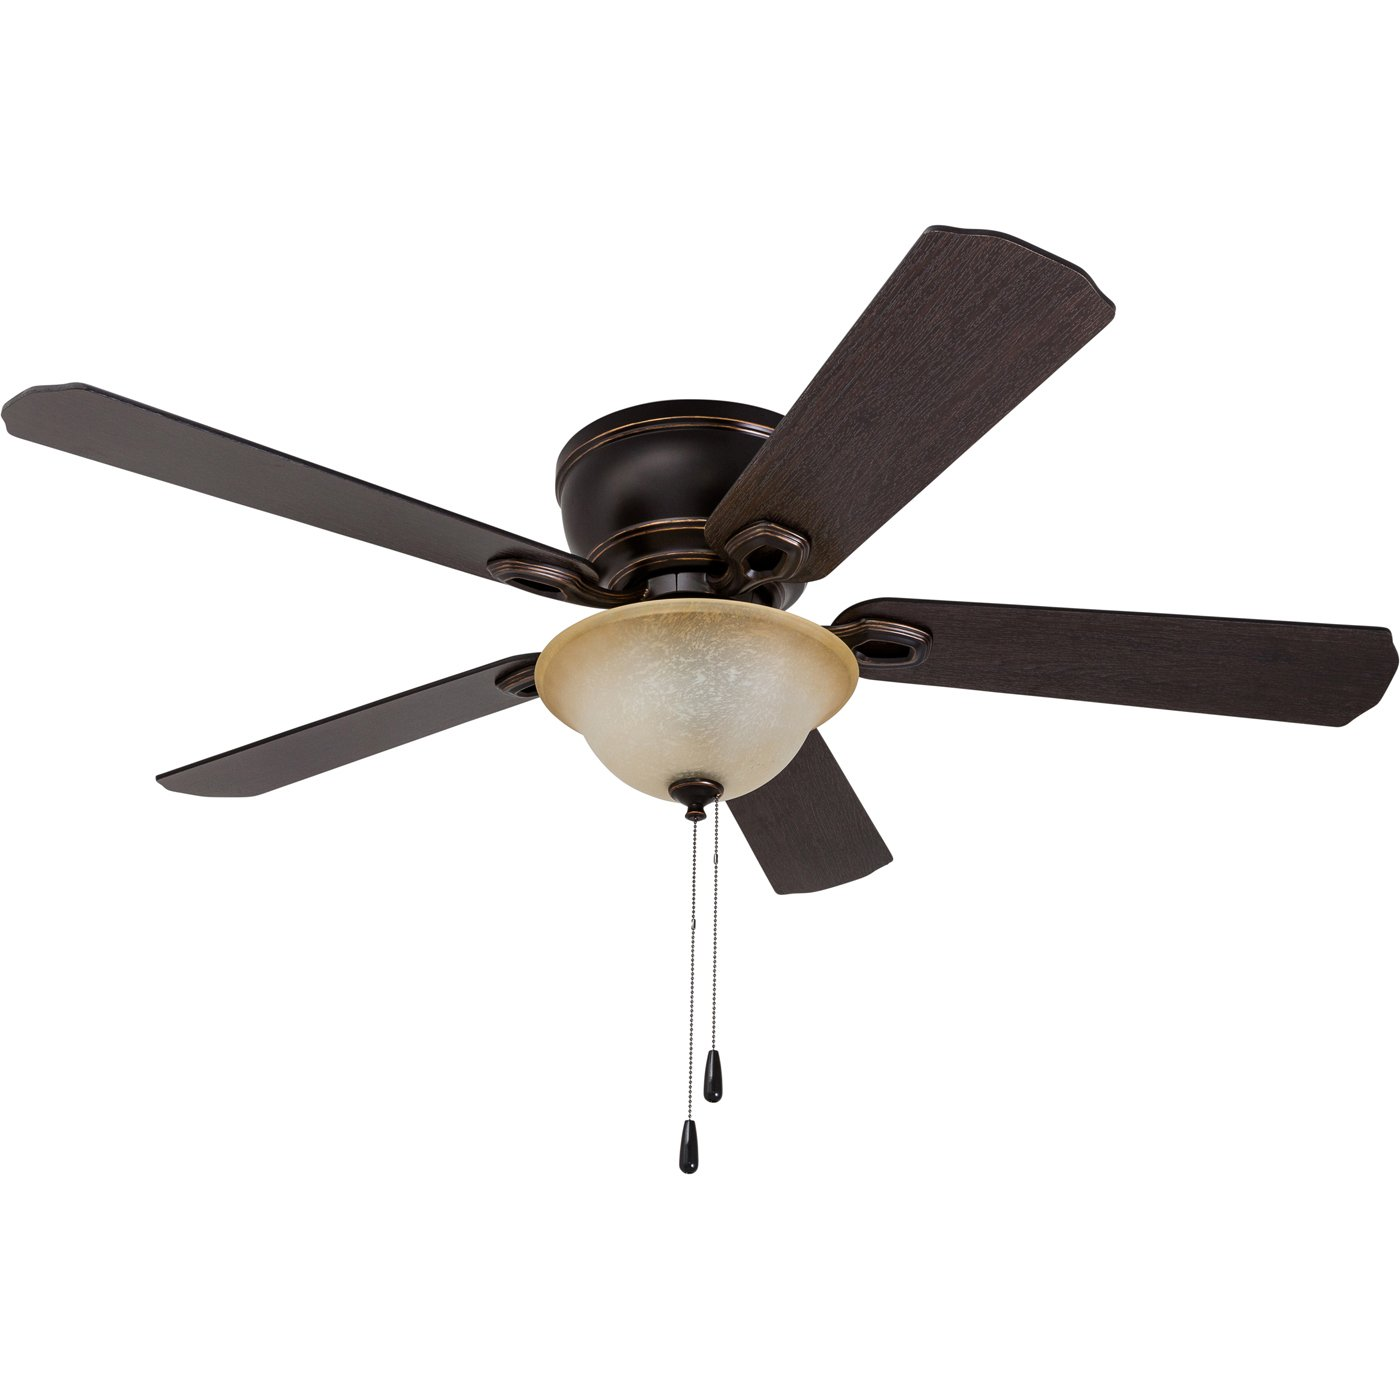 Prominence Home 80030-01 Woodmere Low-Profile Hugger Ceiling Fan with LED Bowl, 52 inches, Bronze